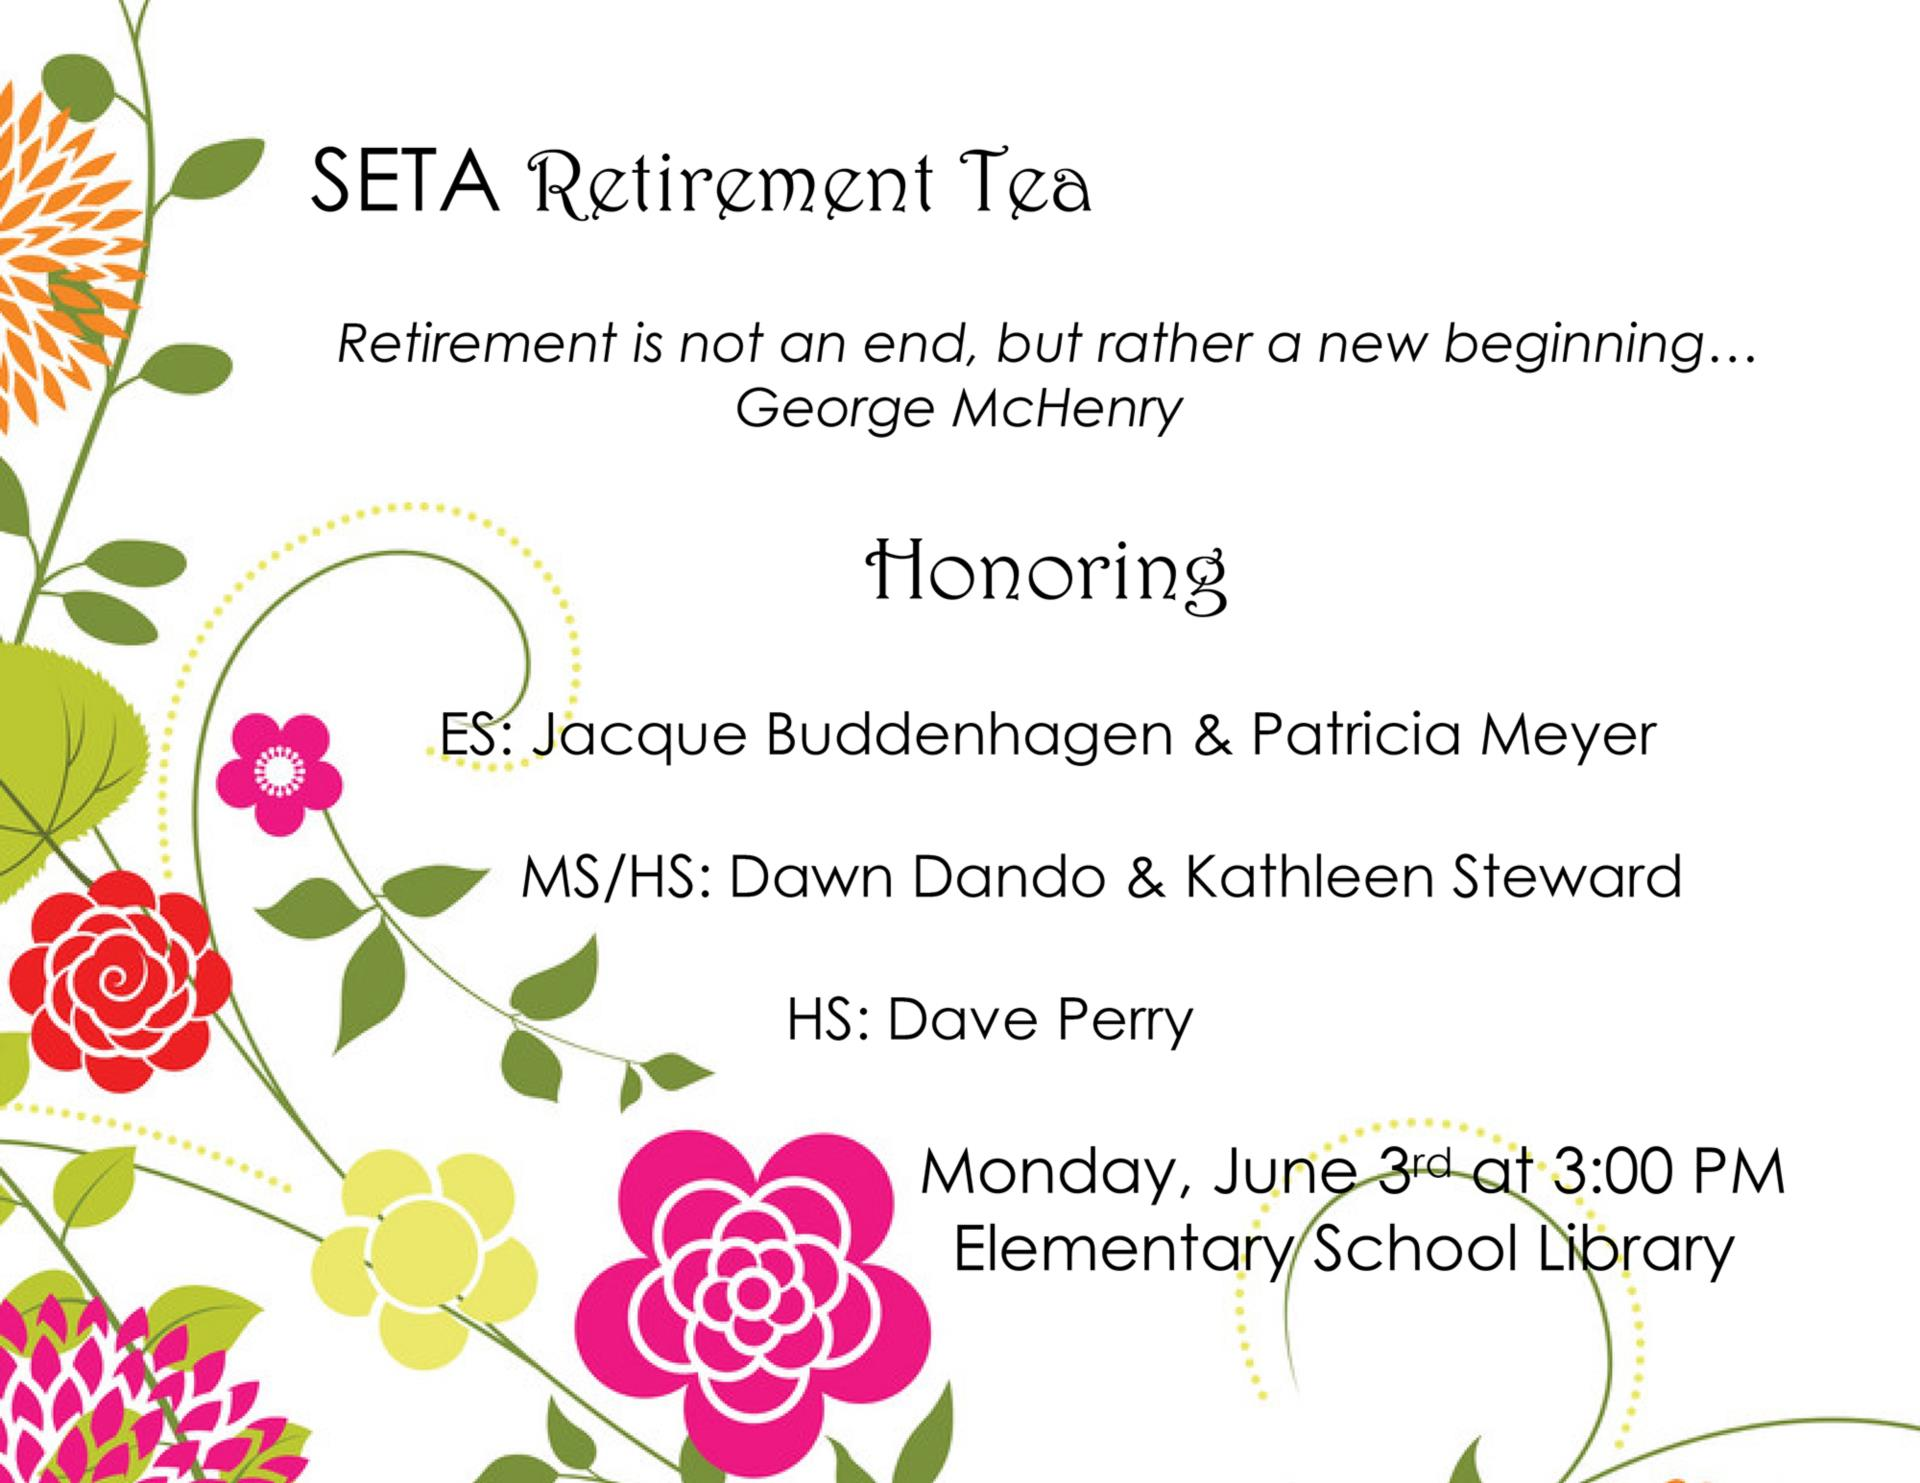 SETA Retirement Tea Poster